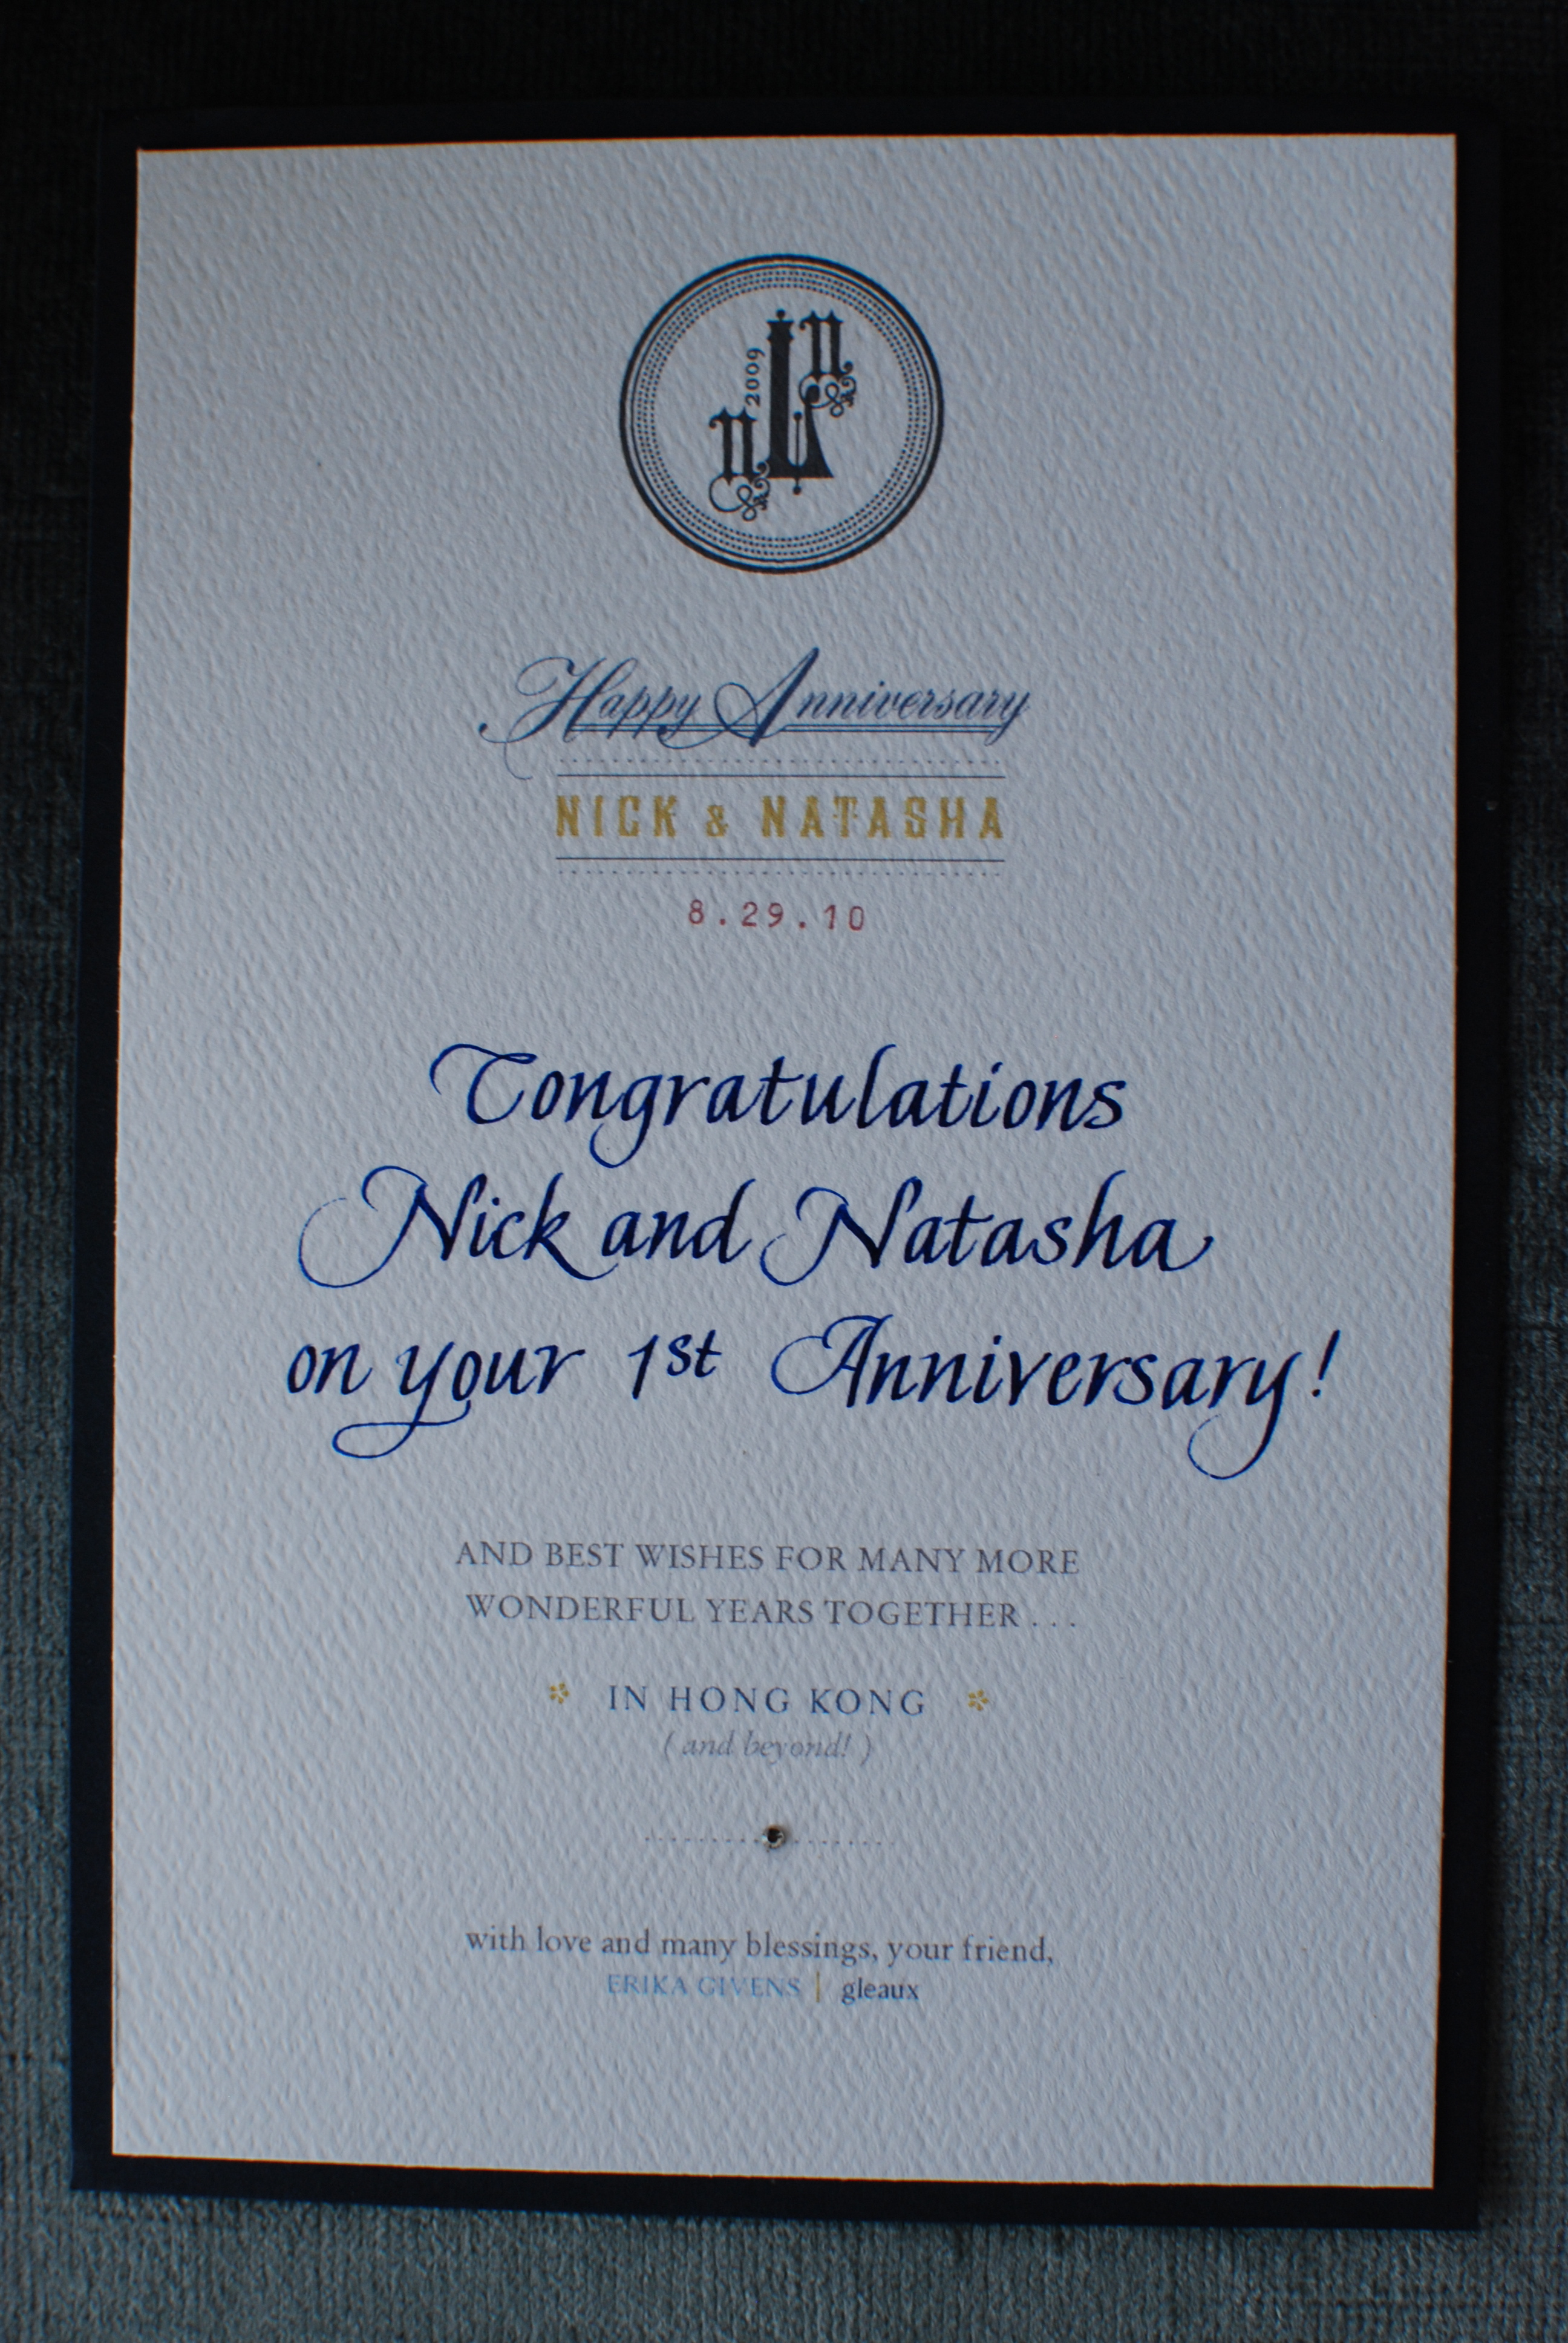 Incredible anniversary card or in my case since i know papineau calligraphy really well as michelle did my wedding calligraphy and i think stopboris Gallery